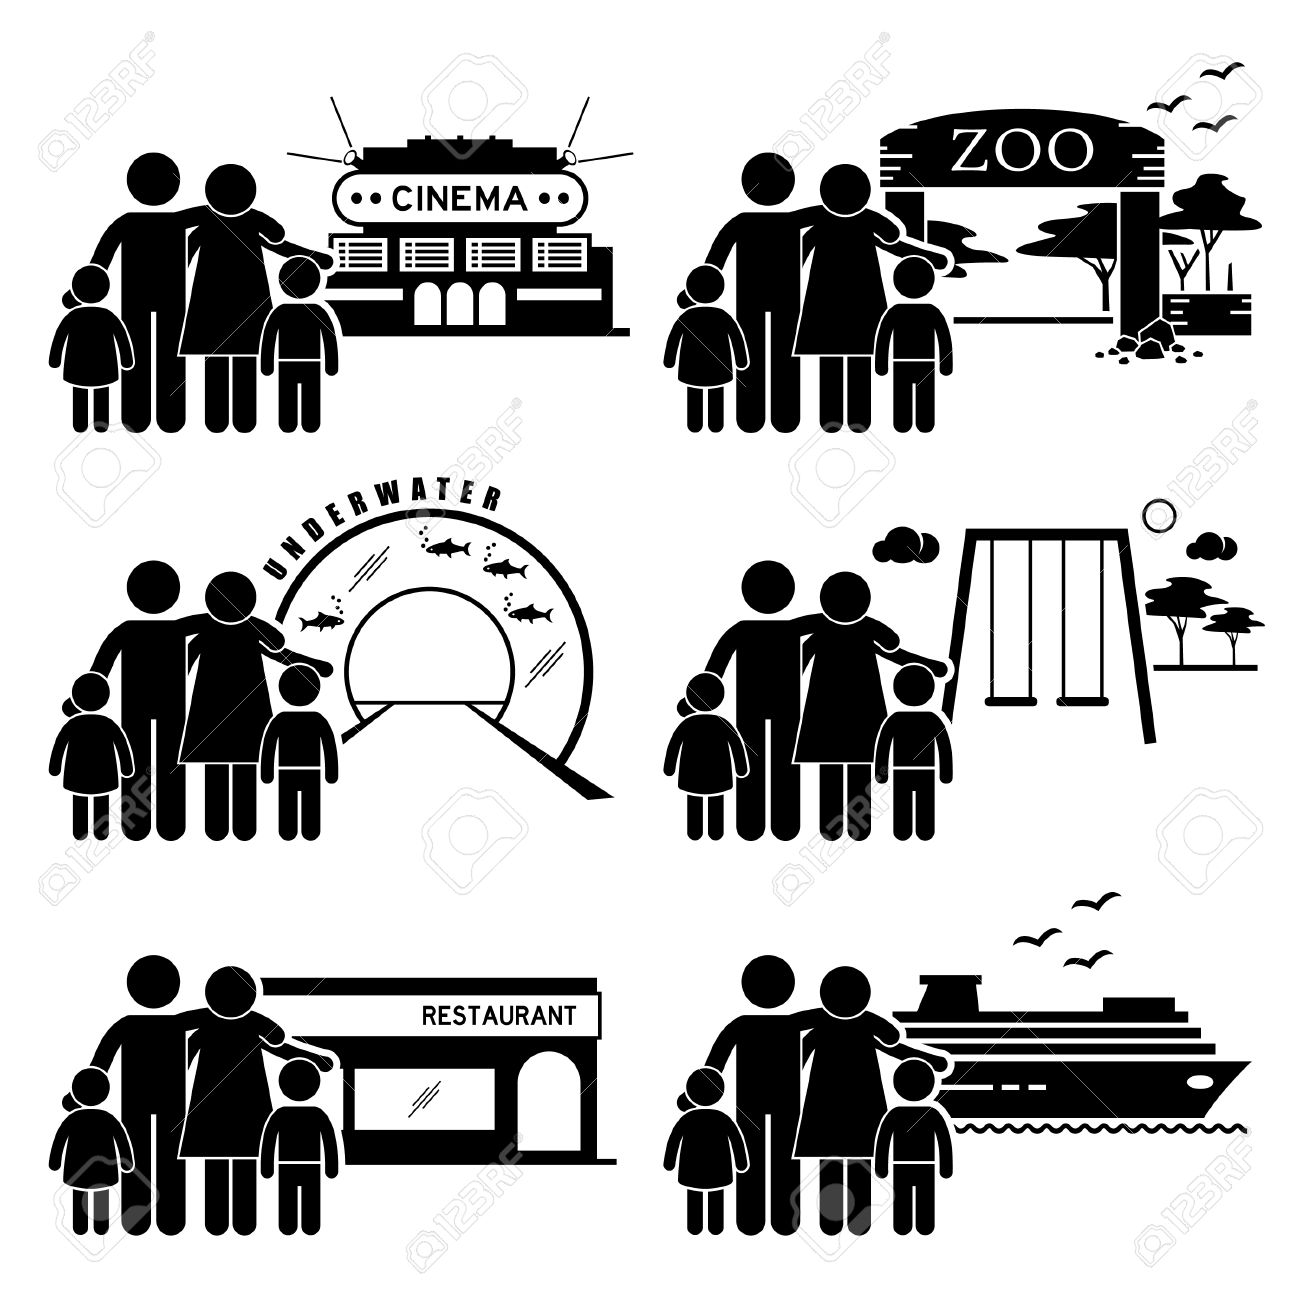 Esszimmer Clipart Stock Photo